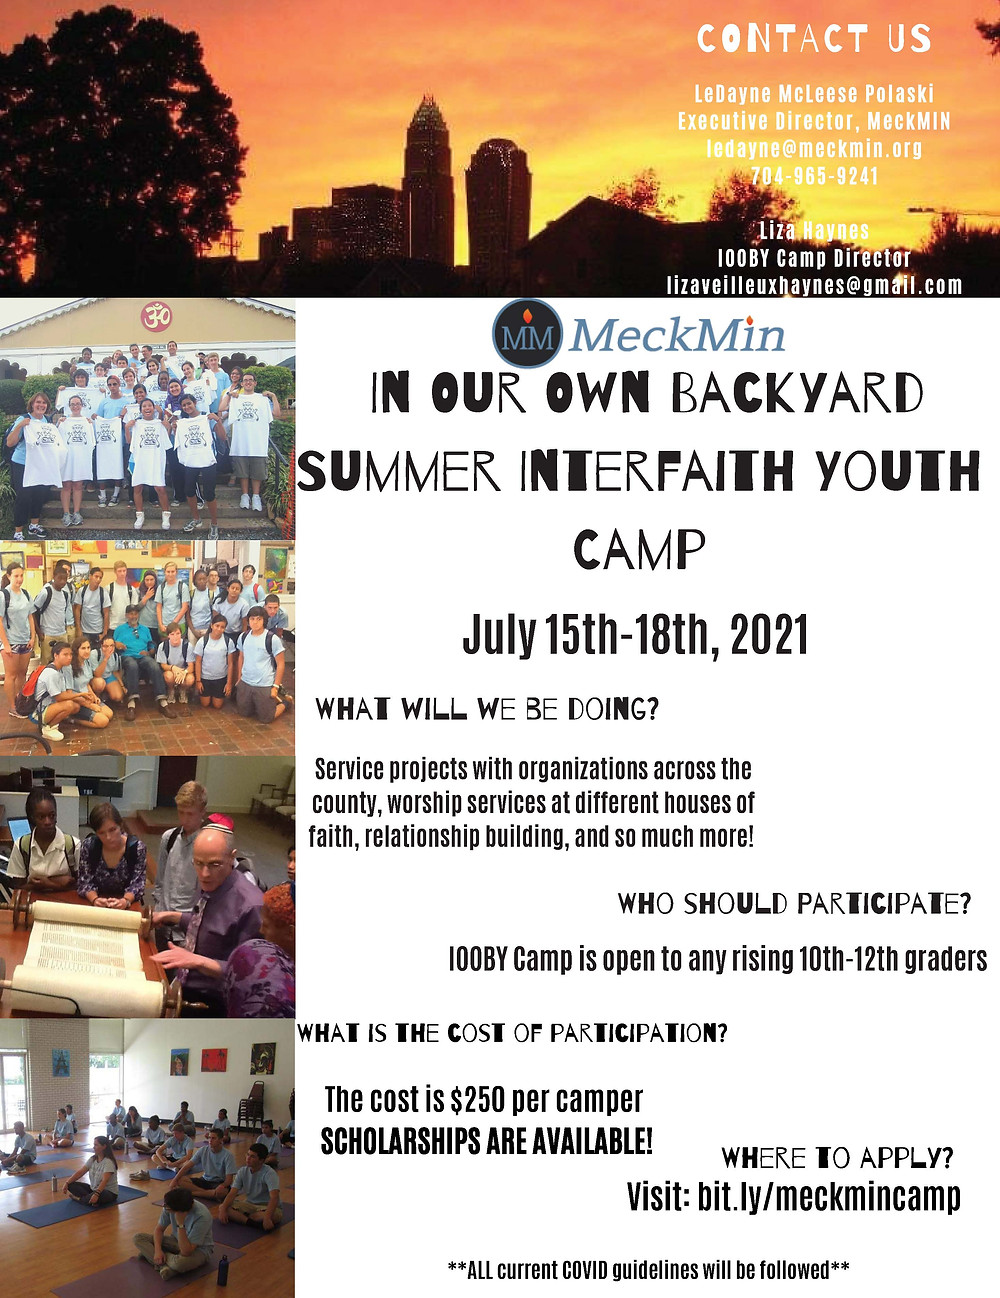 MeckMIN interfaith youth summer camp, In Your Own Backyard